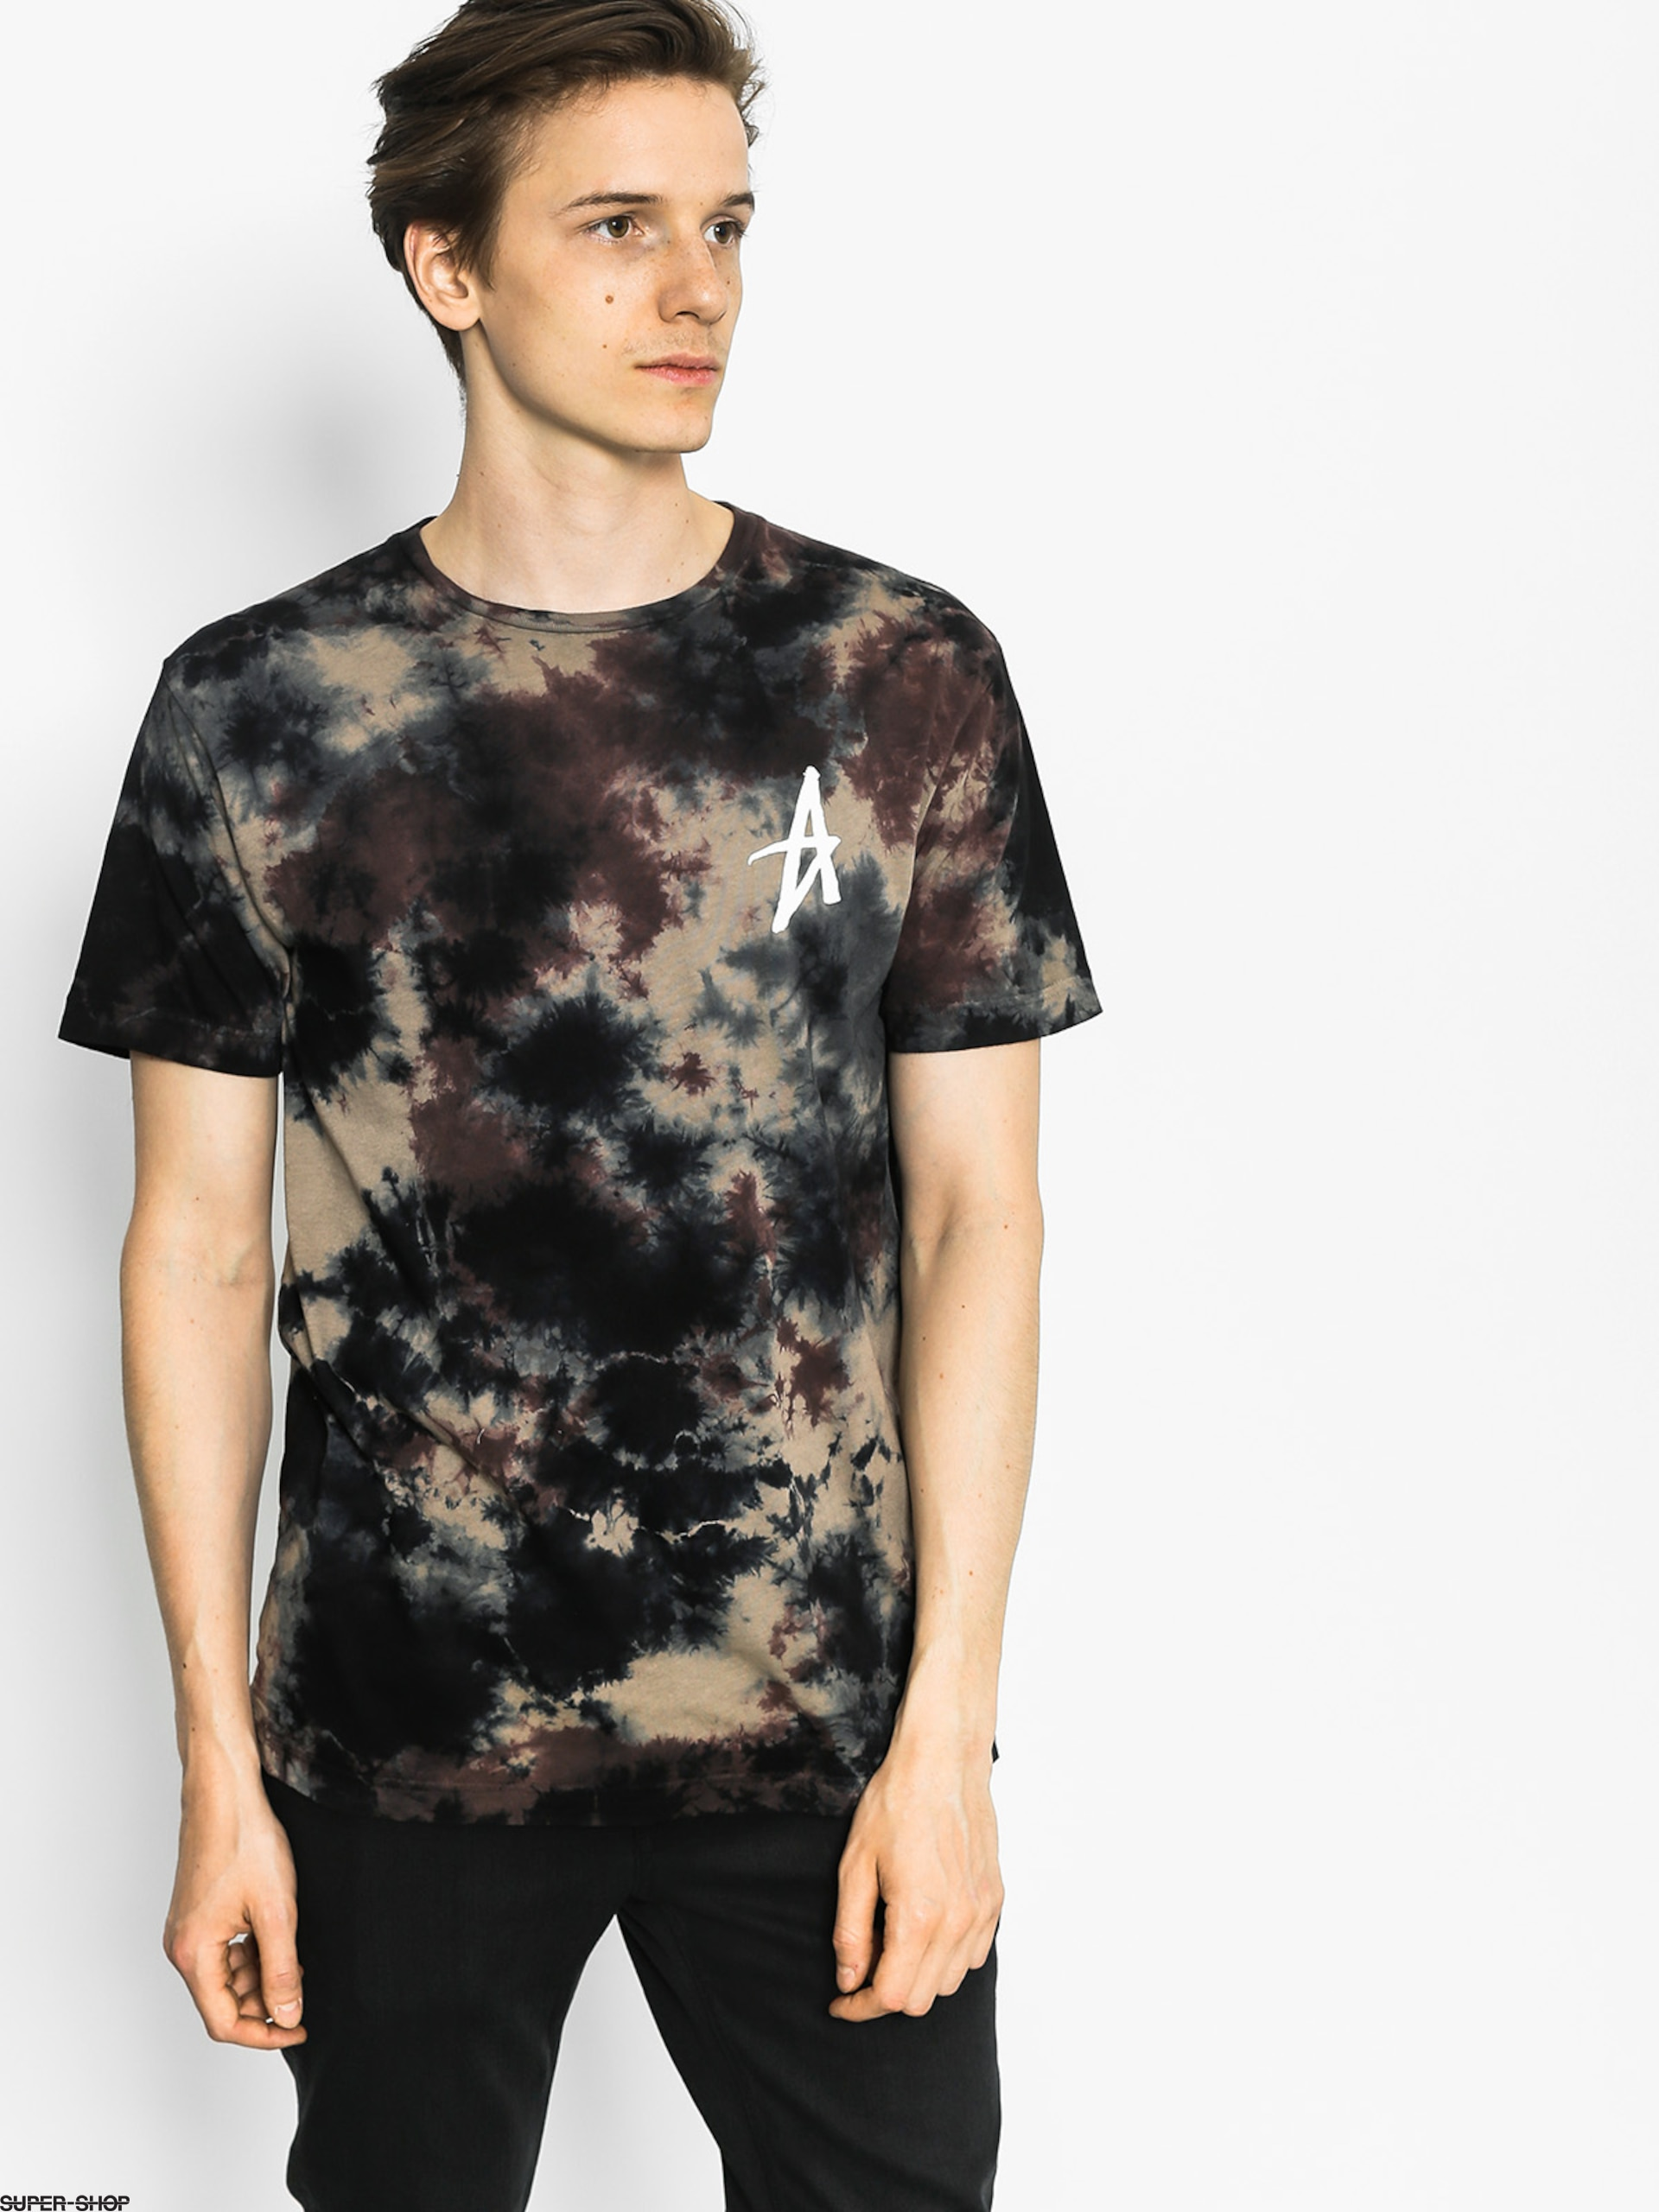 Altamont T-Shirt Dark Days (brown/black)